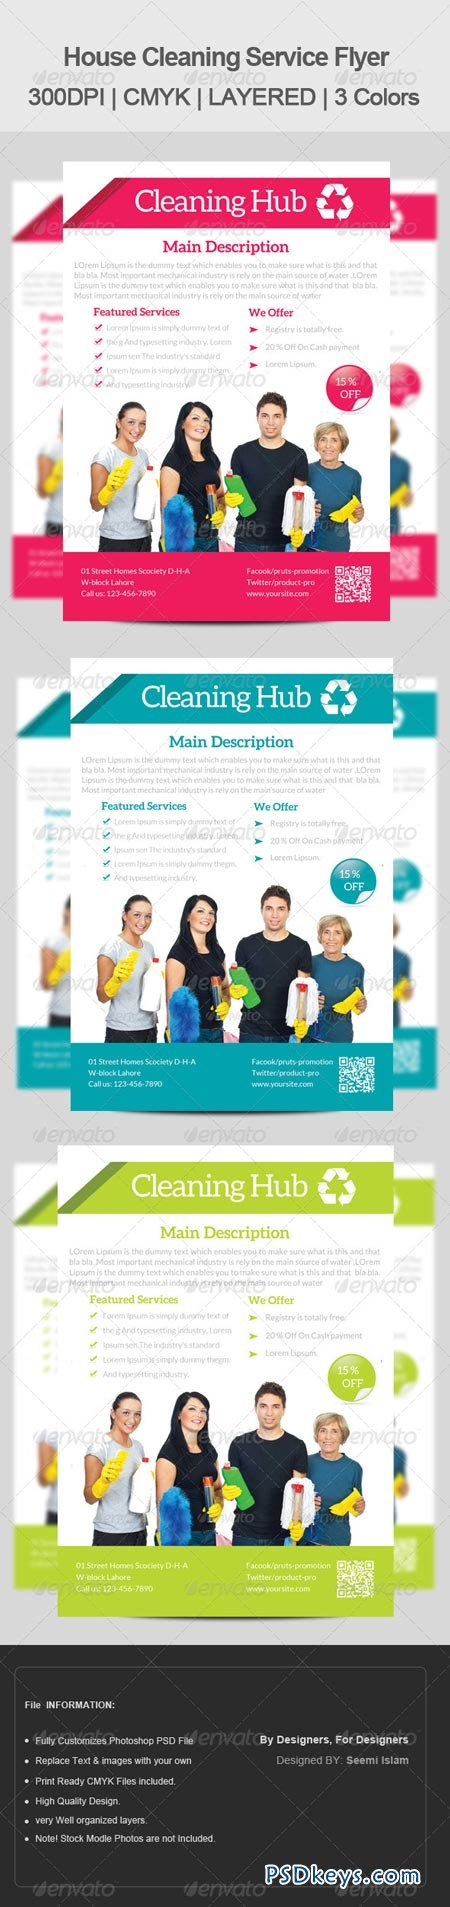 house cleaning services flyer template  house cleaning services flyer template 6680889